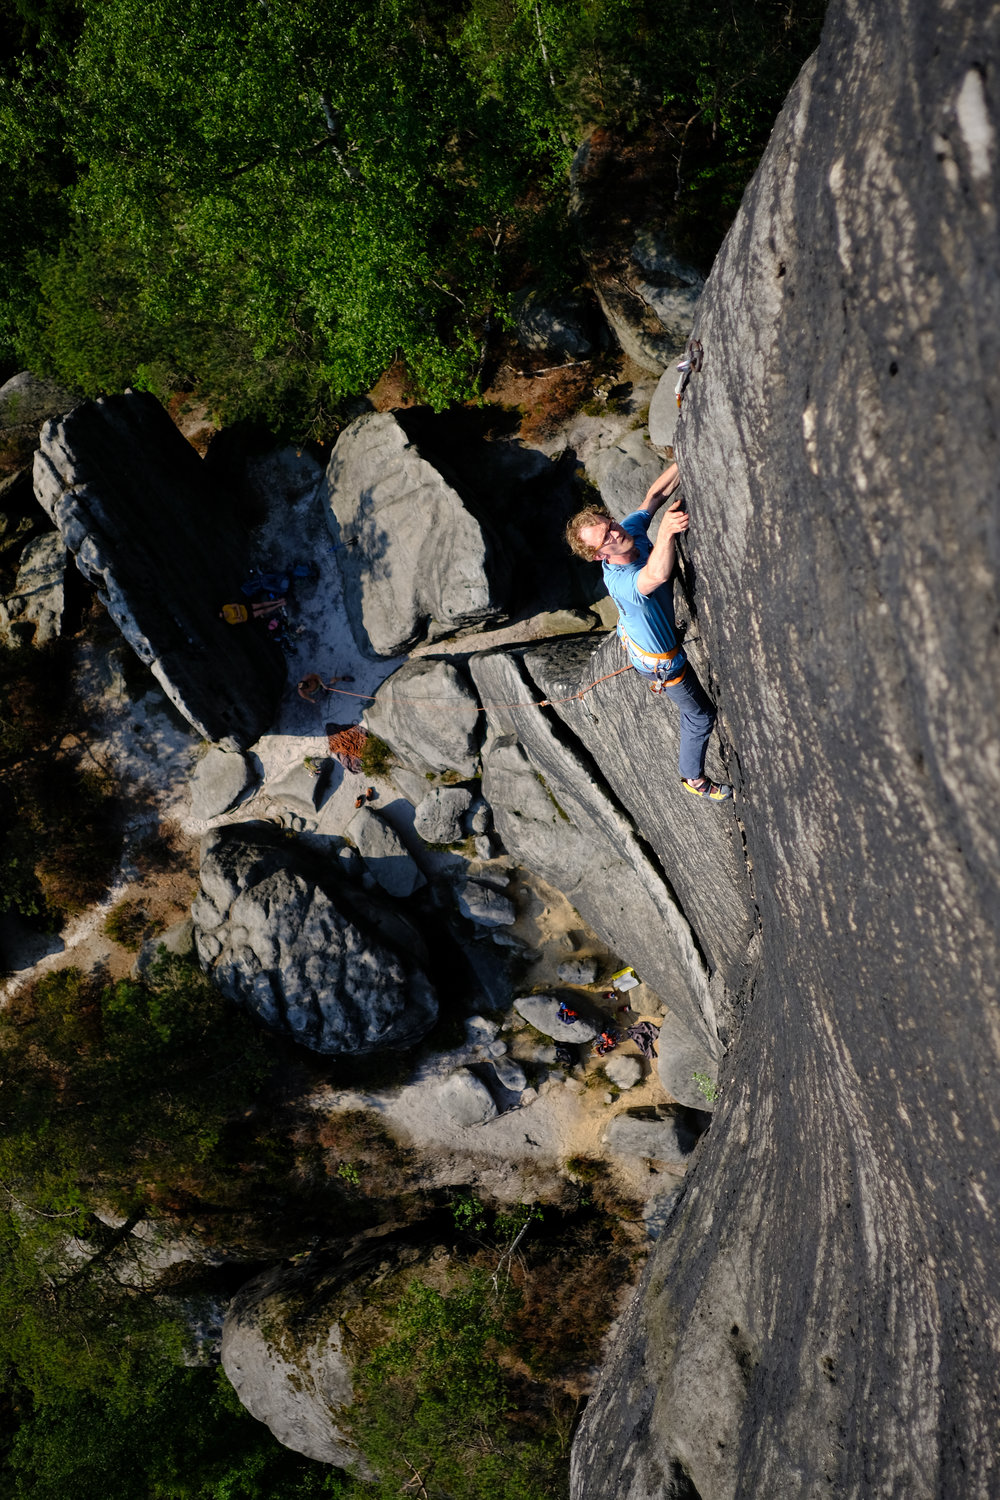 local legend robert leistner climbing in elbsandtsein pic: lepesant